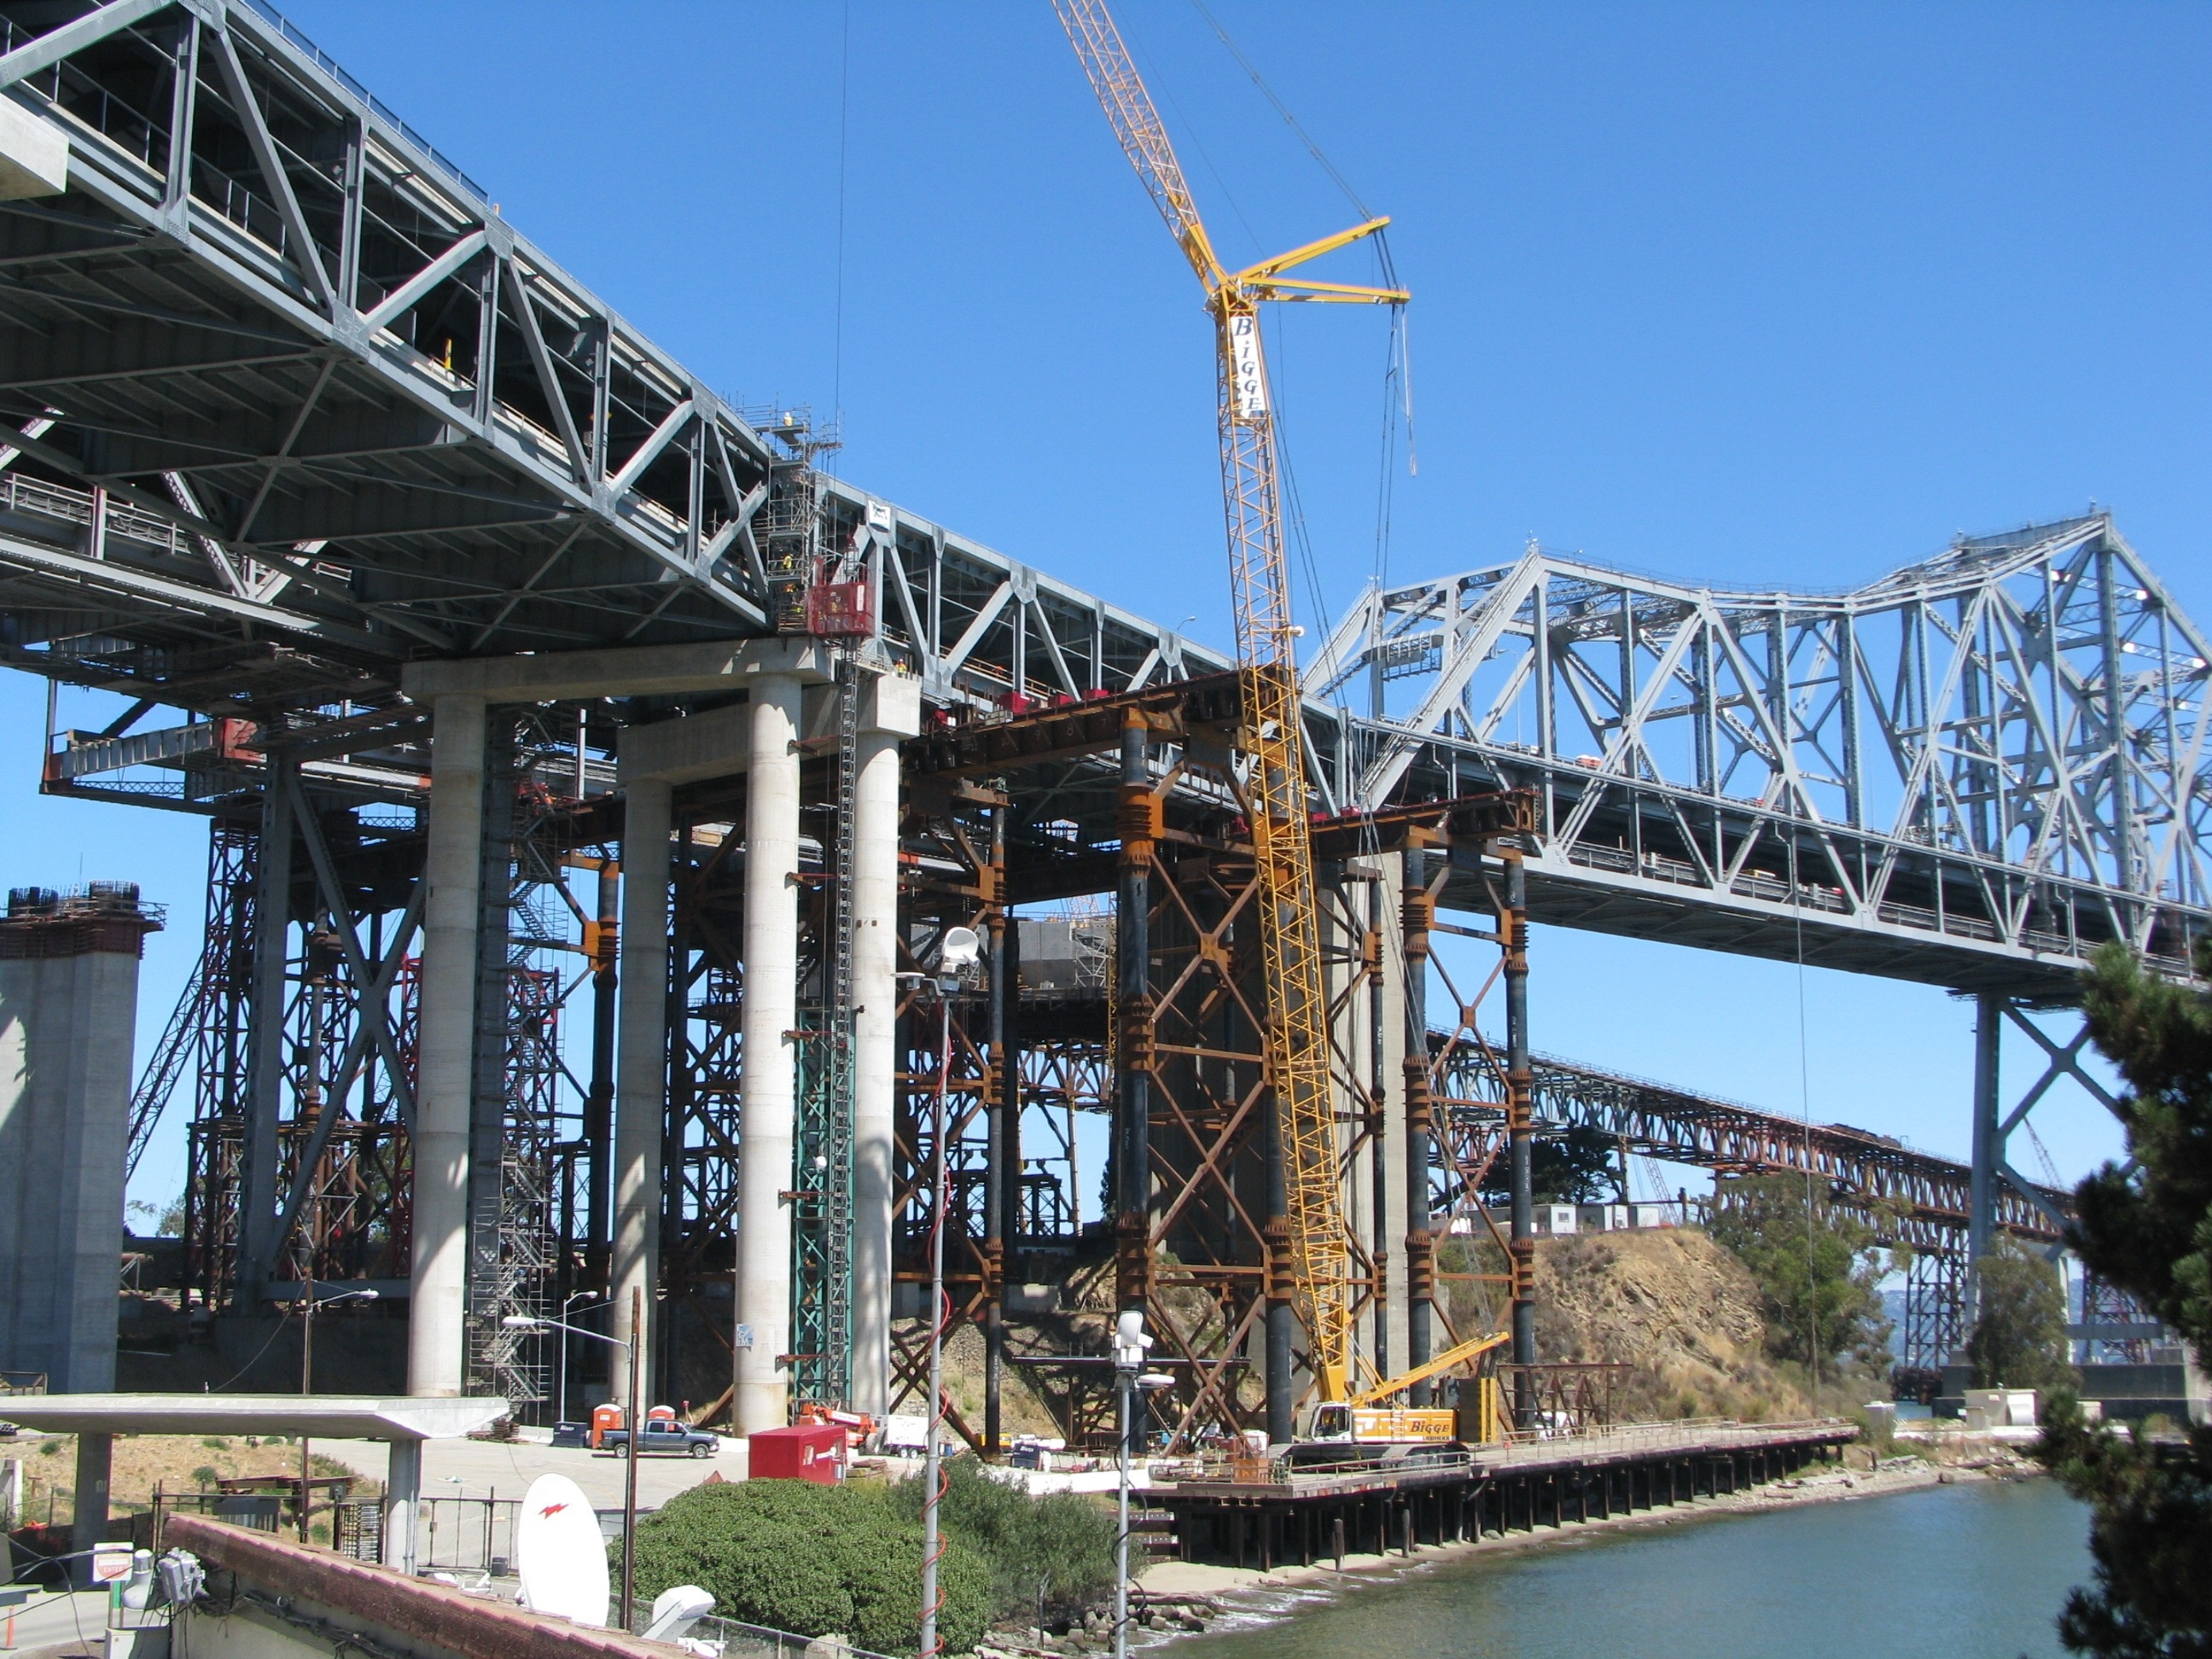 Toyota San Francisco >> EarthCam Archives One Million Images of San Francisco-Oakland Bay Bridge Project